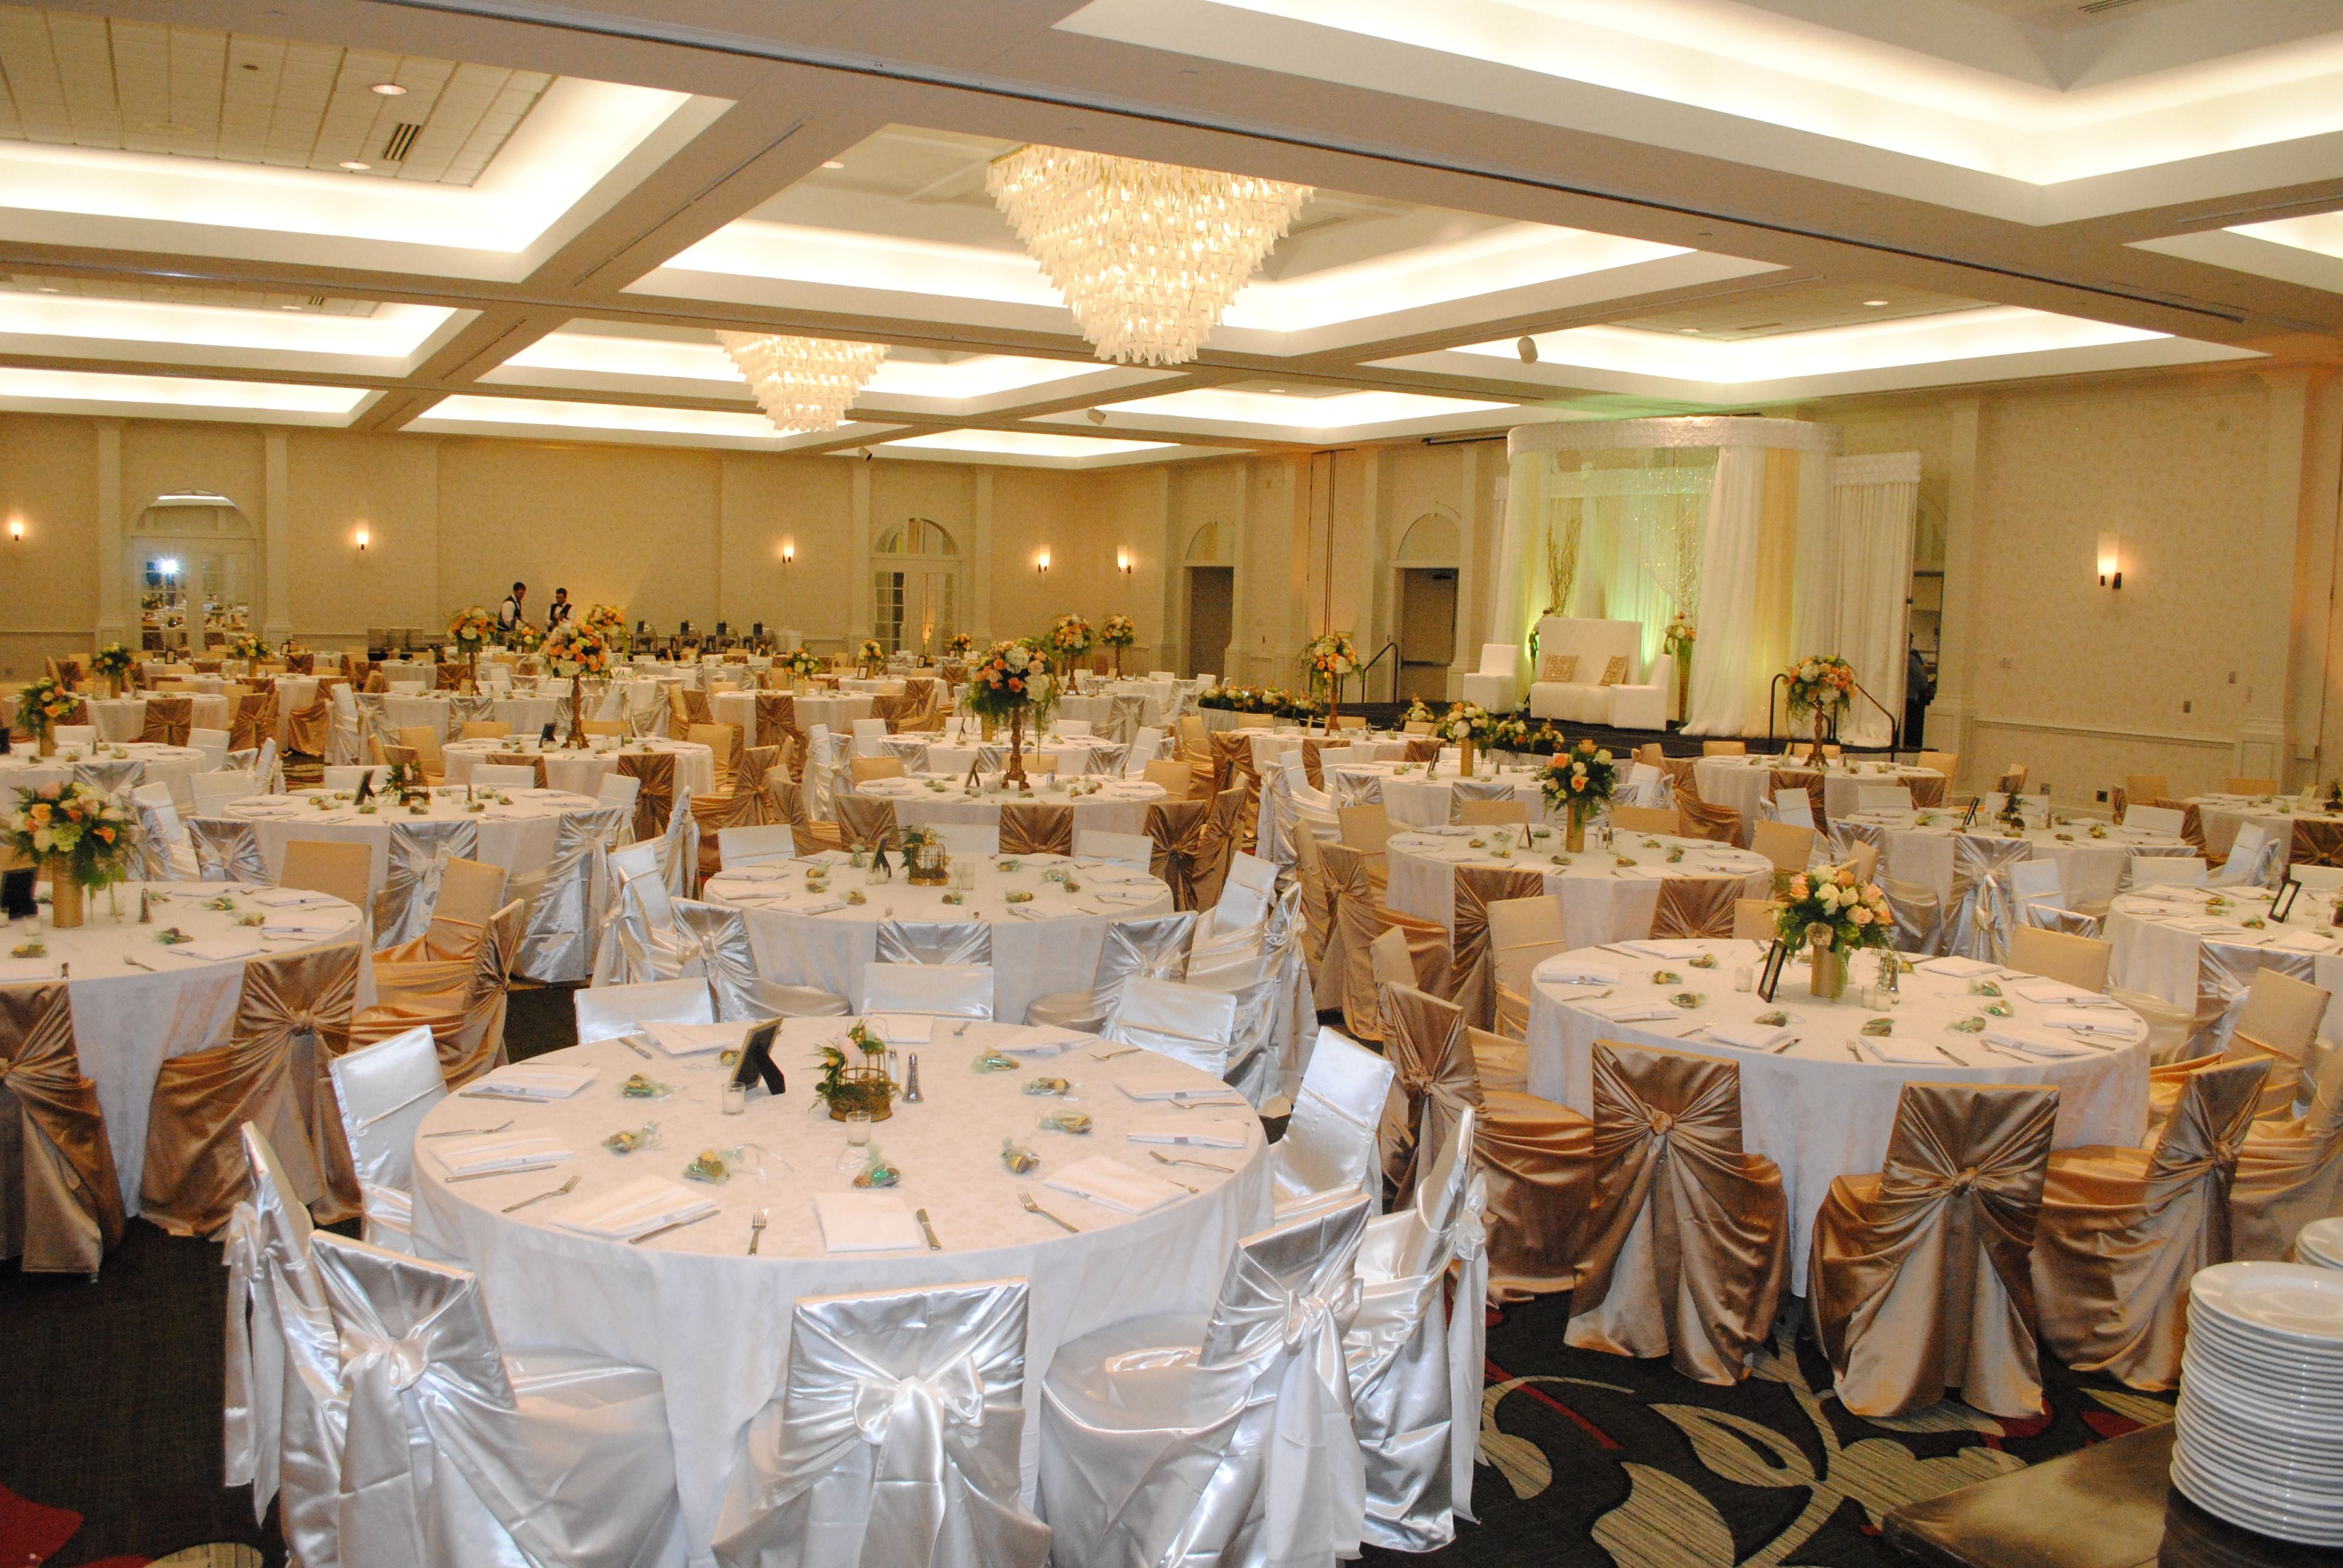 affordable wedding reception venues minnesota%0A Our MN Valley Ballroom  seating up to     or more guests  This elegant white